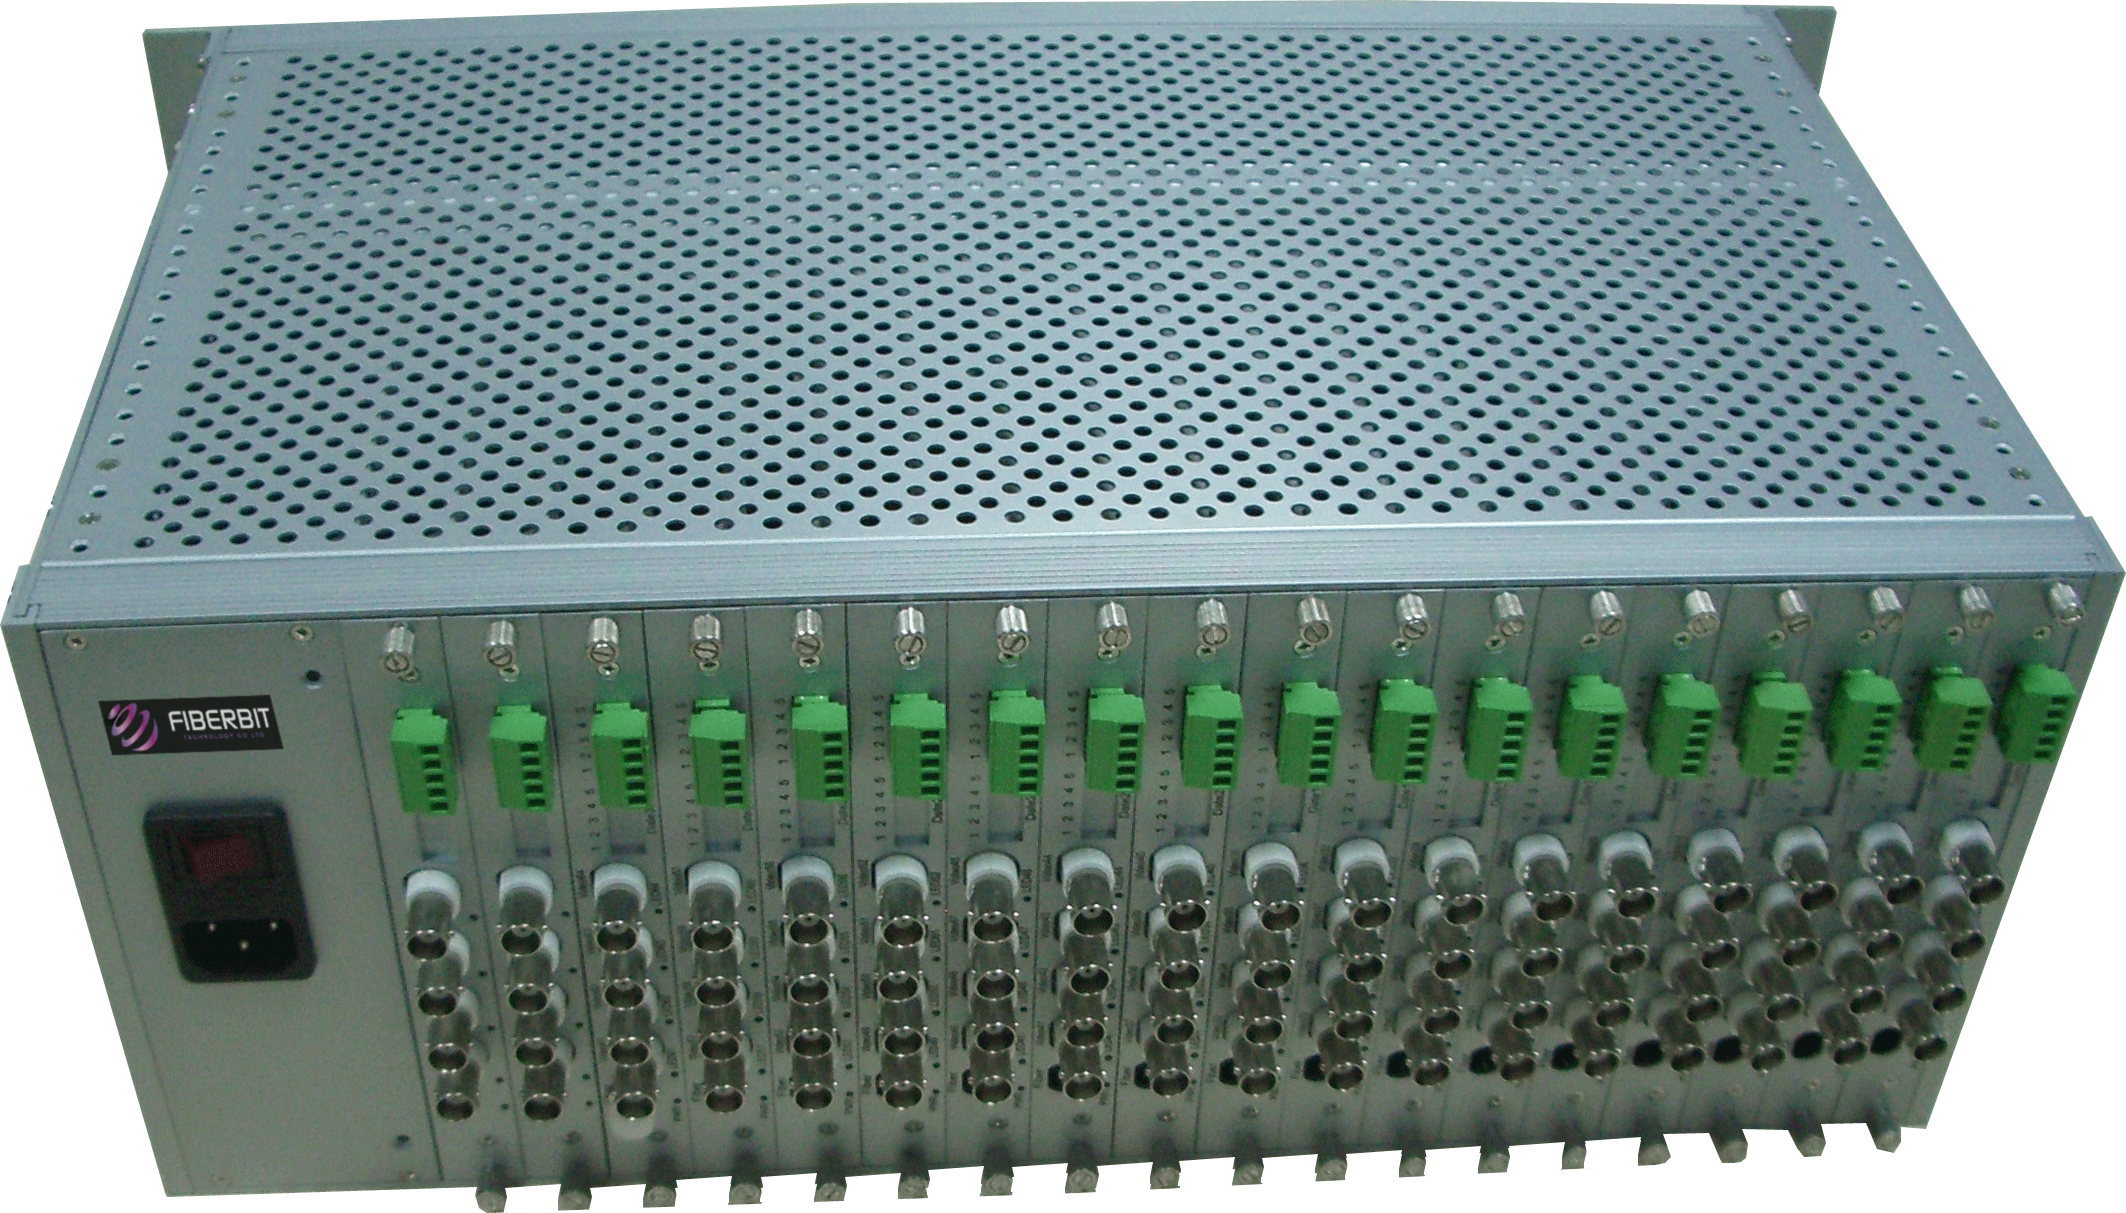 64 Video Ports to Fiber Optic Converter